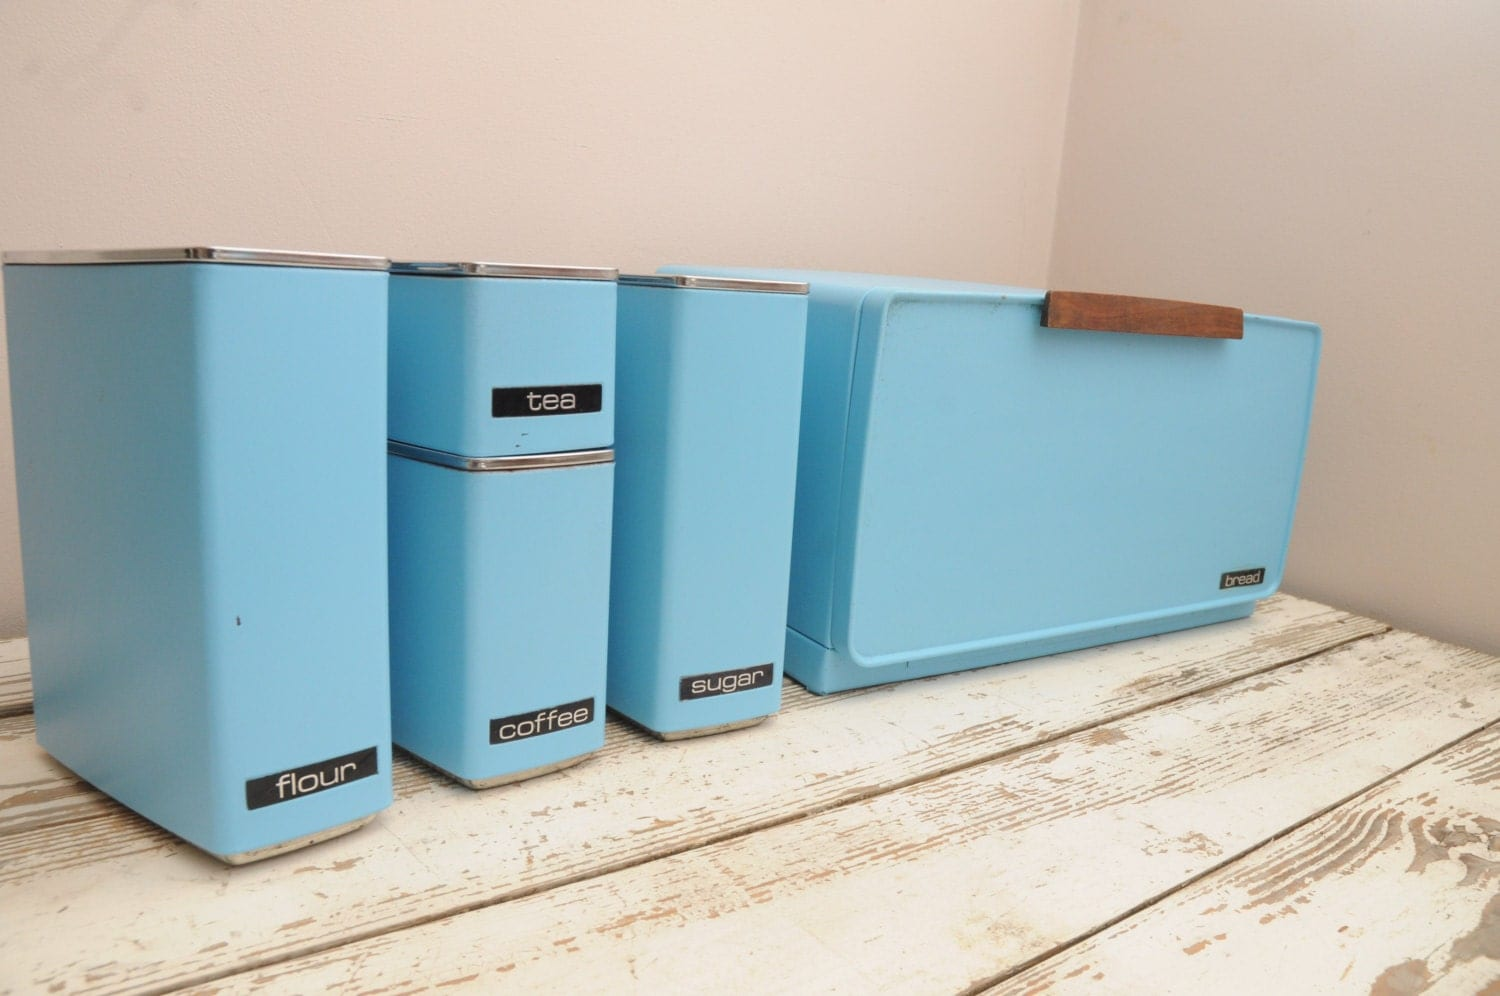 lincoln turquoise metal kitchen canister set with breadbox